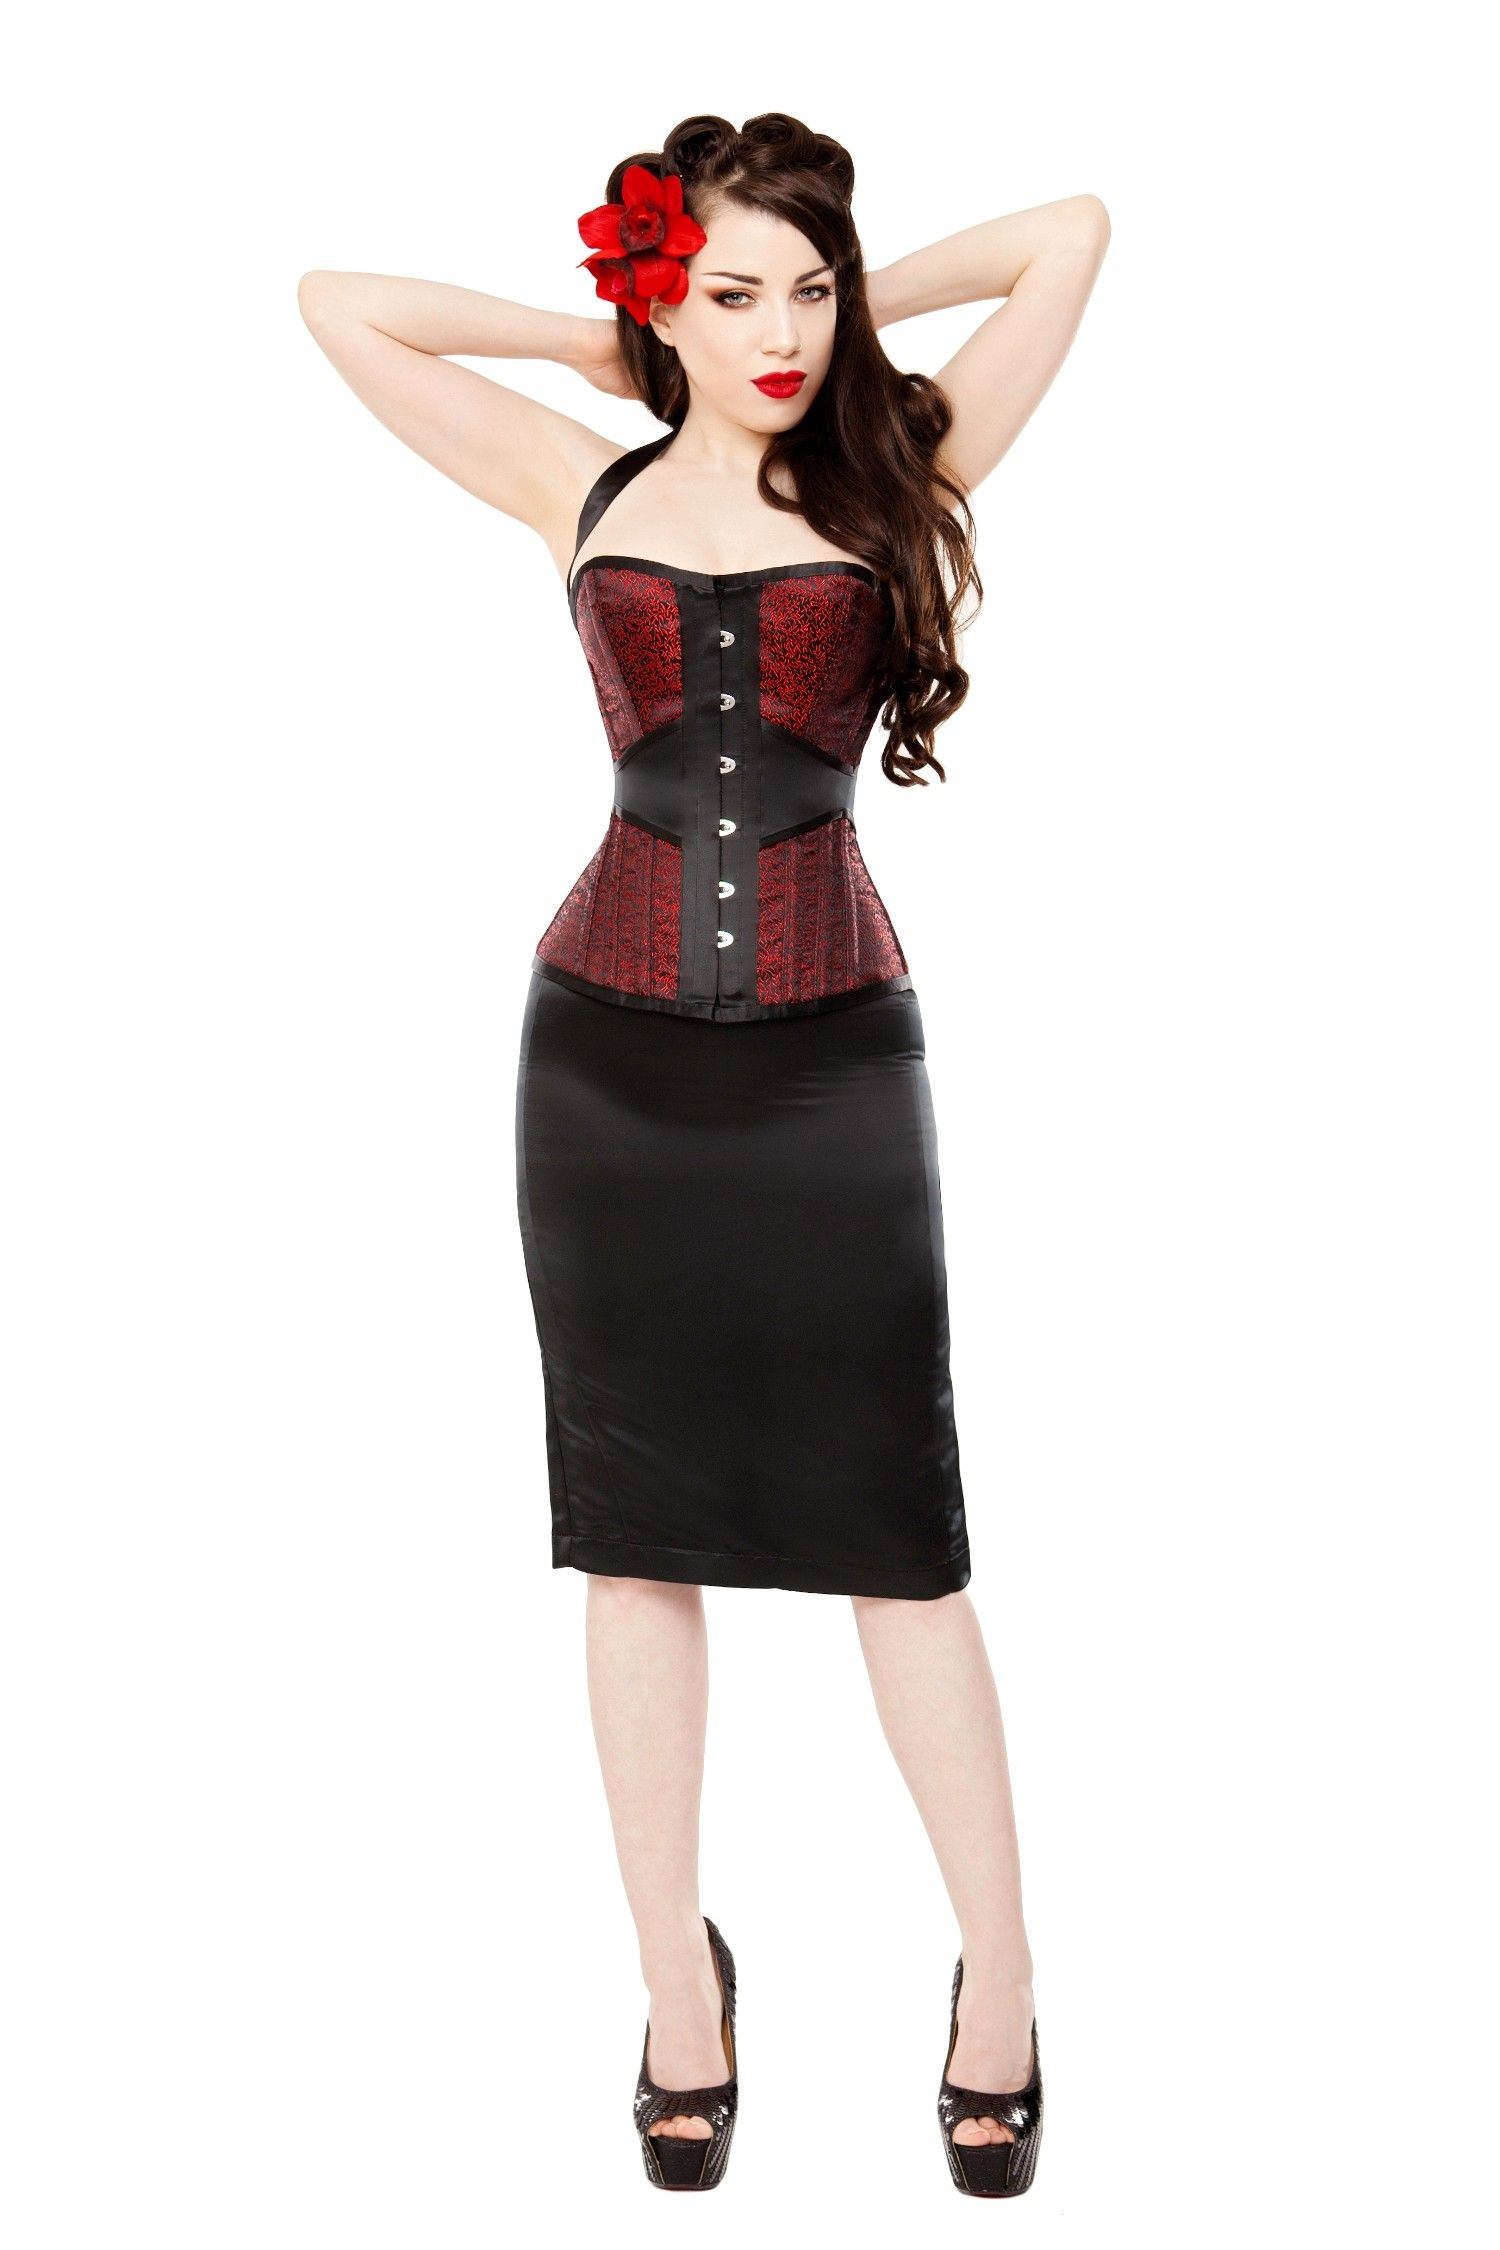 Red And Black Pencil Skirt - Dress Ala